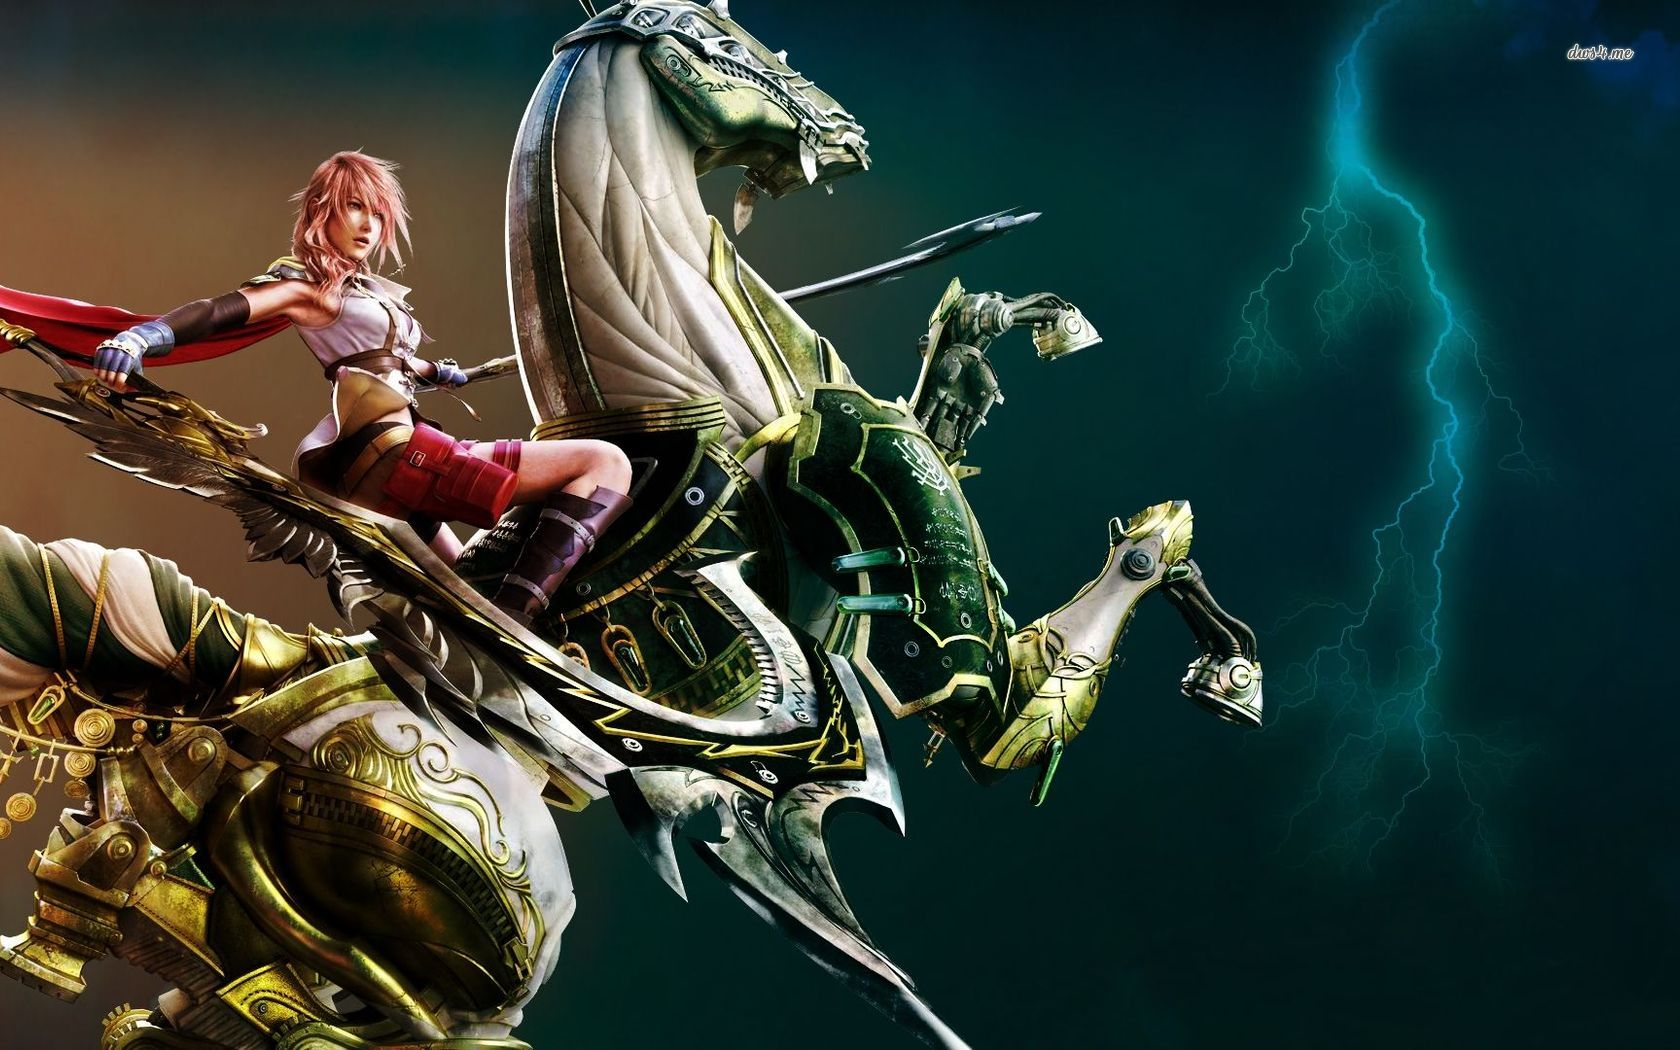 Final Fantasy Xiii 2220400 Hd Wallpaper Backgrounds Download